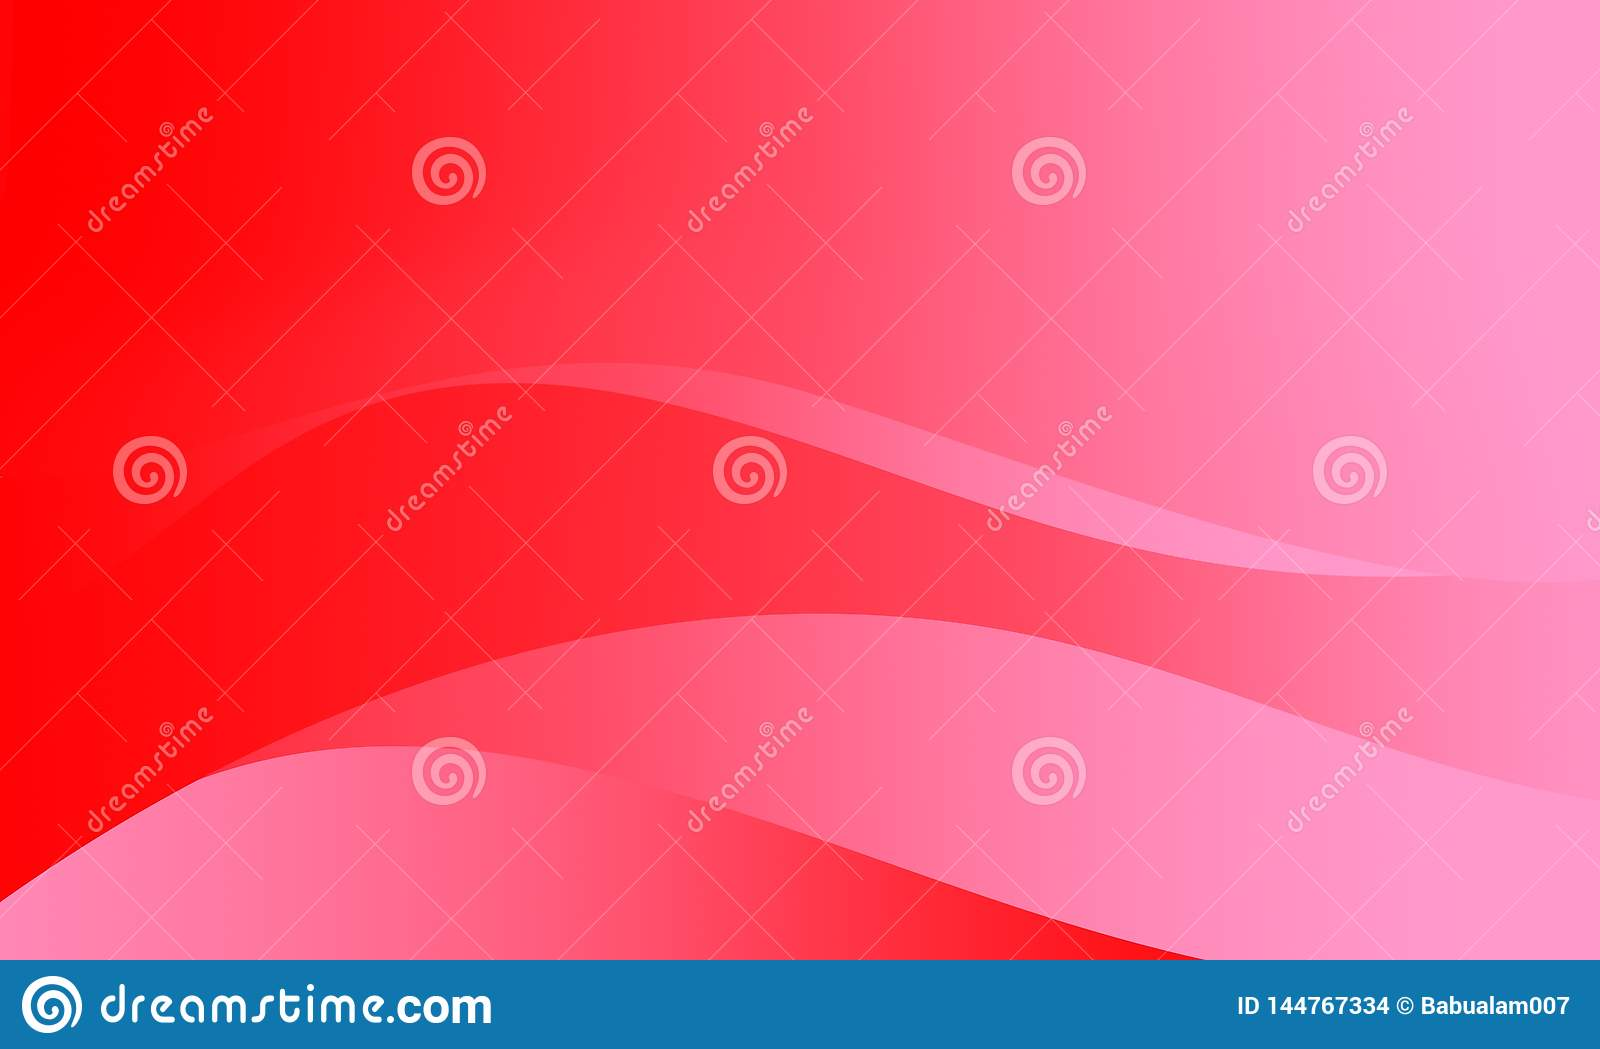 Abstract Vector Illustration. wallpaper any uses for backgrounds or screen saver bright red- pink smoothly colors Background.